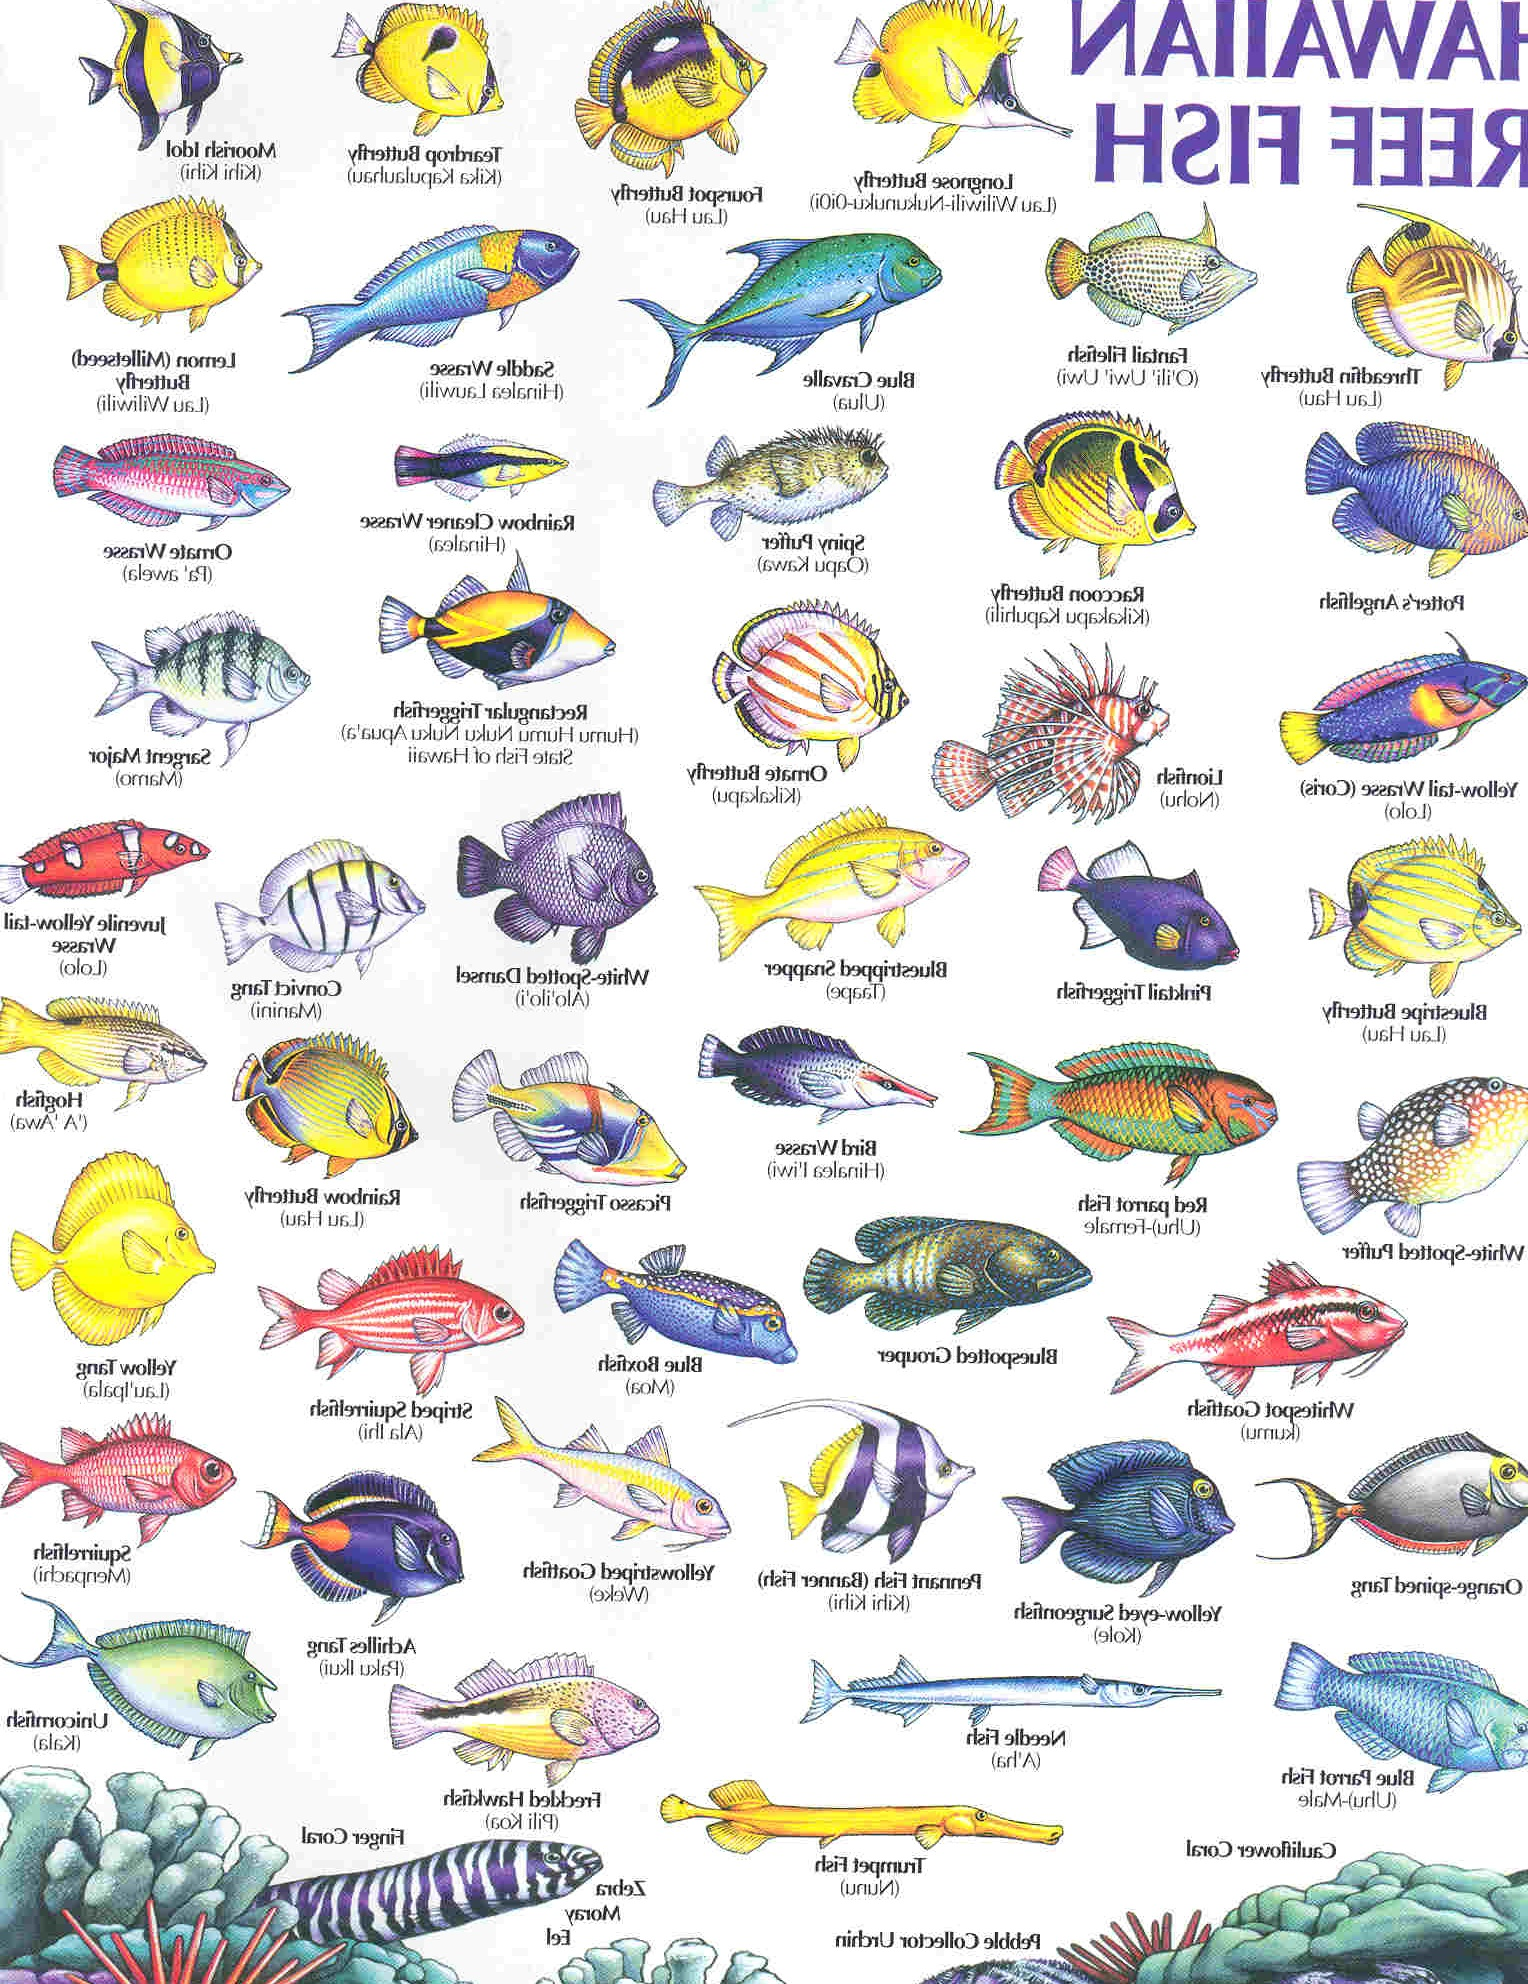 Reef fish pictures on animal picture society for Hawaiian reef fish